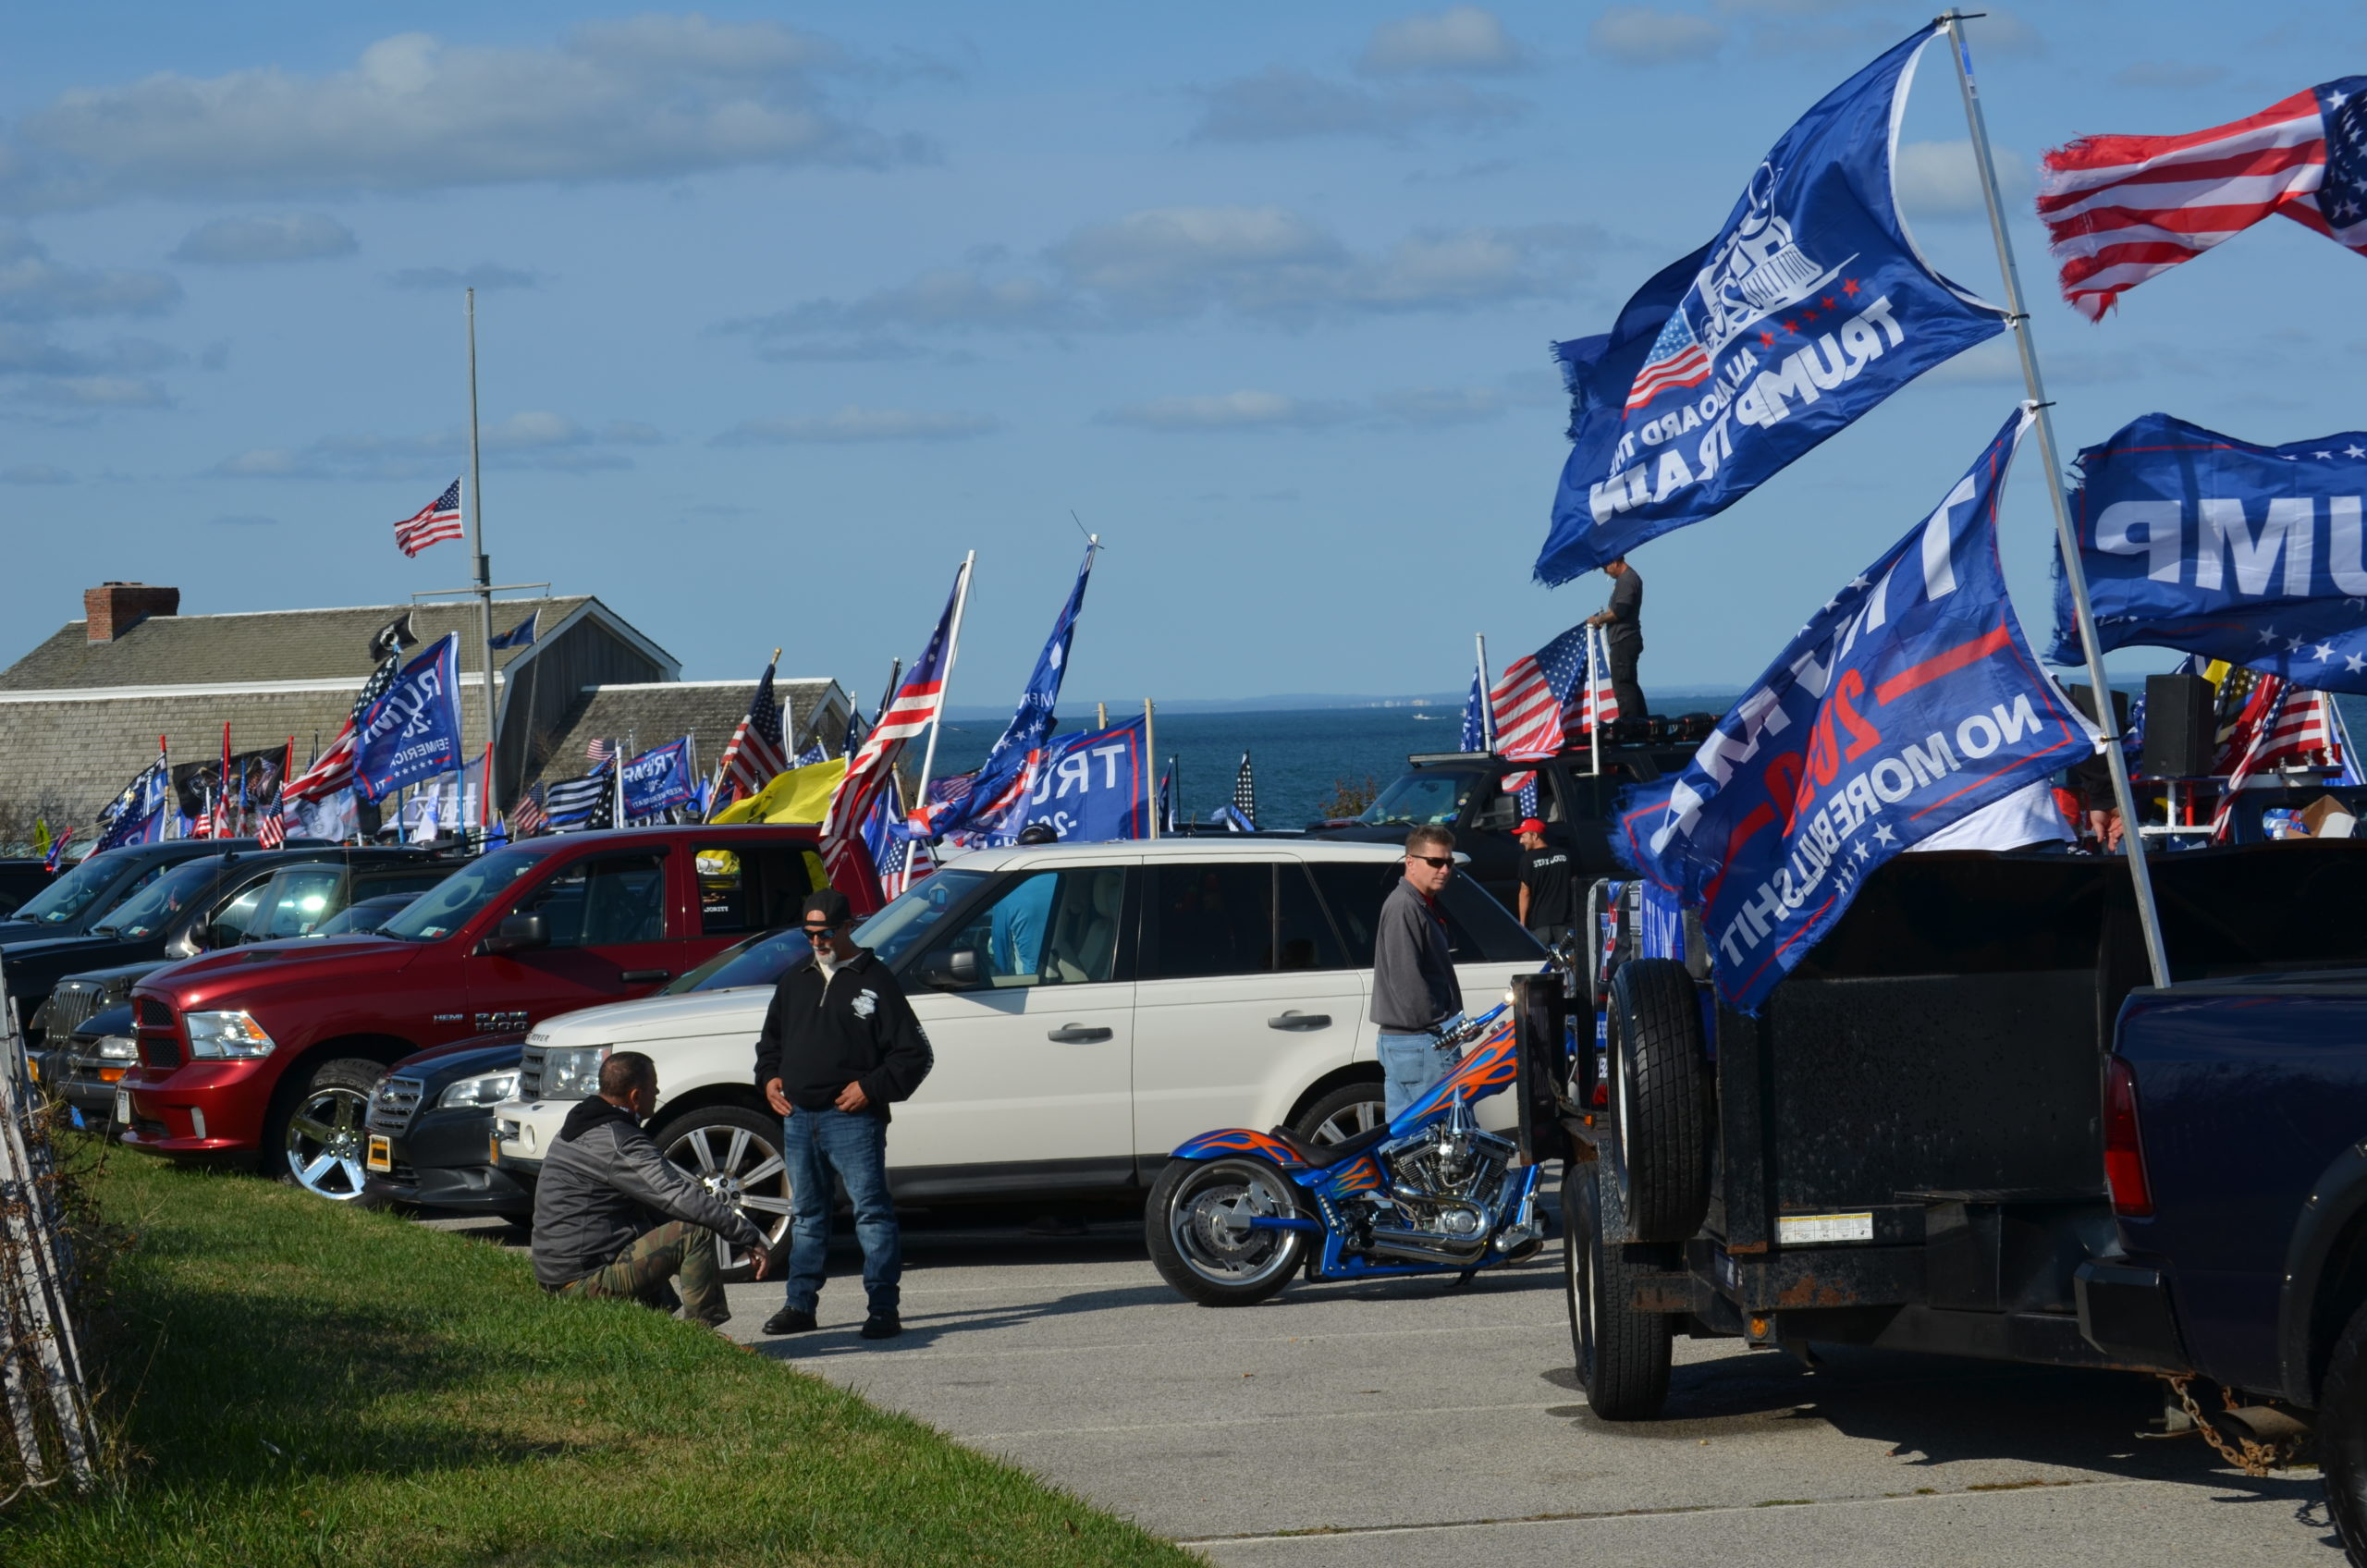 The parking lots at the Montauk lighthouse were filled as parade attendees reached the end of the route.